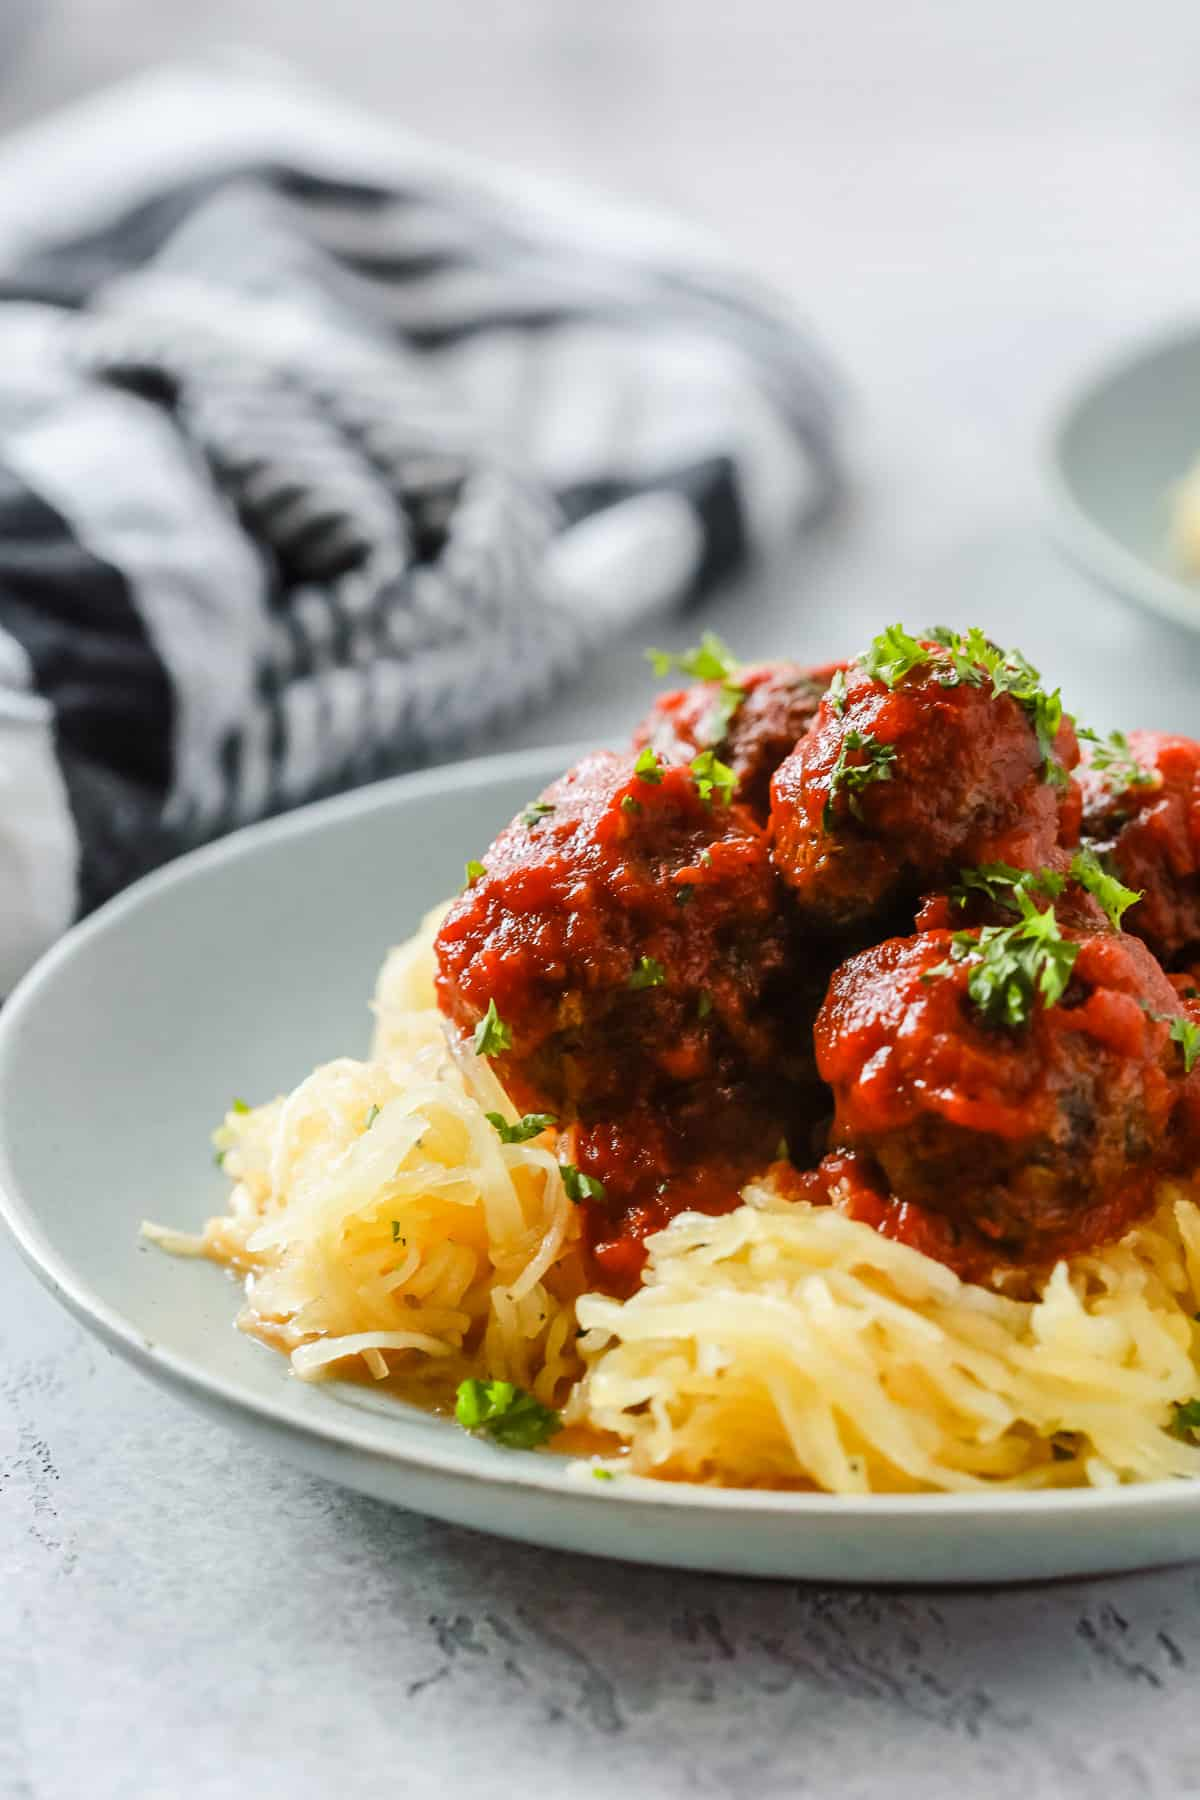 Whole30 Low-Carb Spaghetti Squash With Meatballs